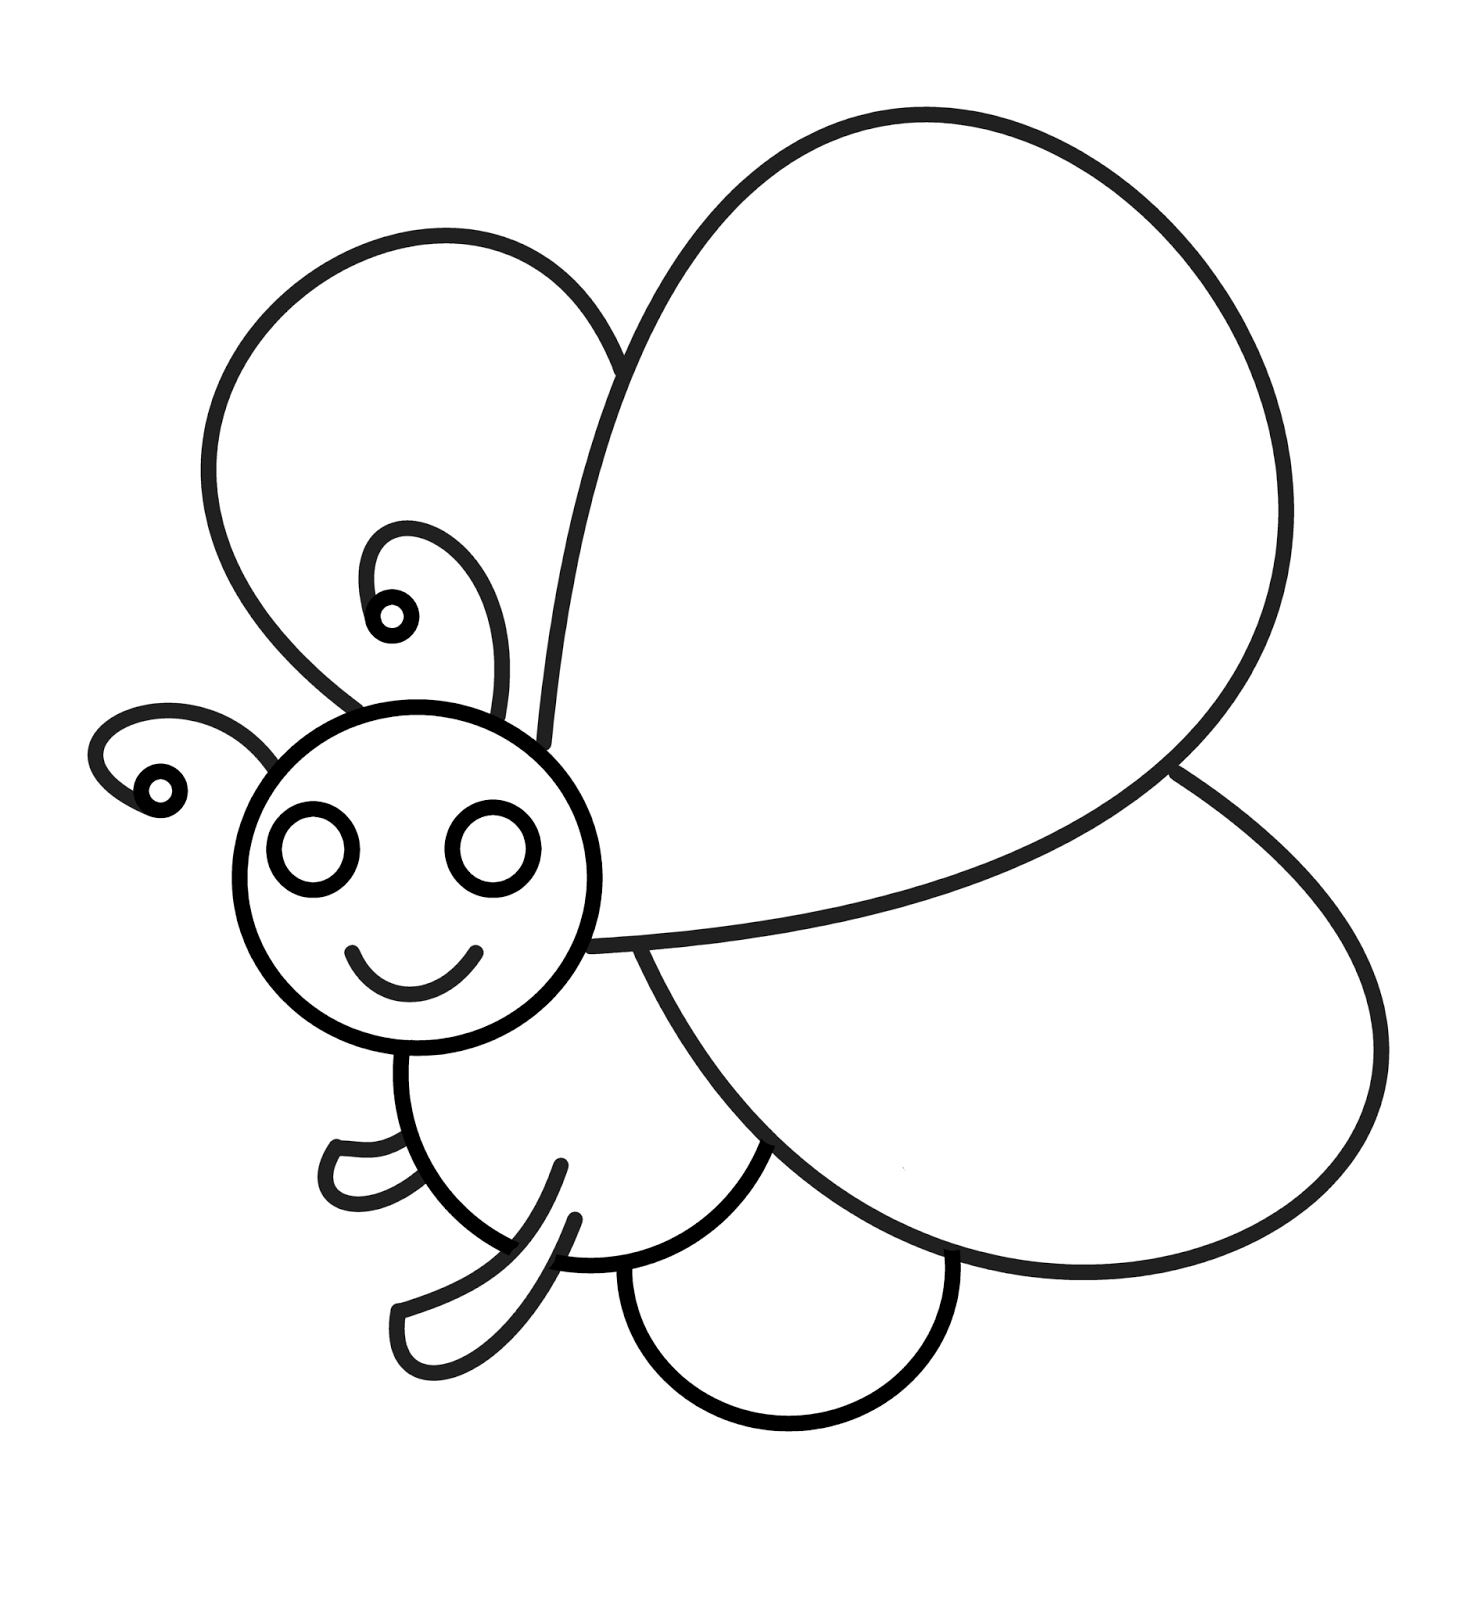 1478x1600 Butterfly Drawings Cartoon Animated Cartoon Butterfly